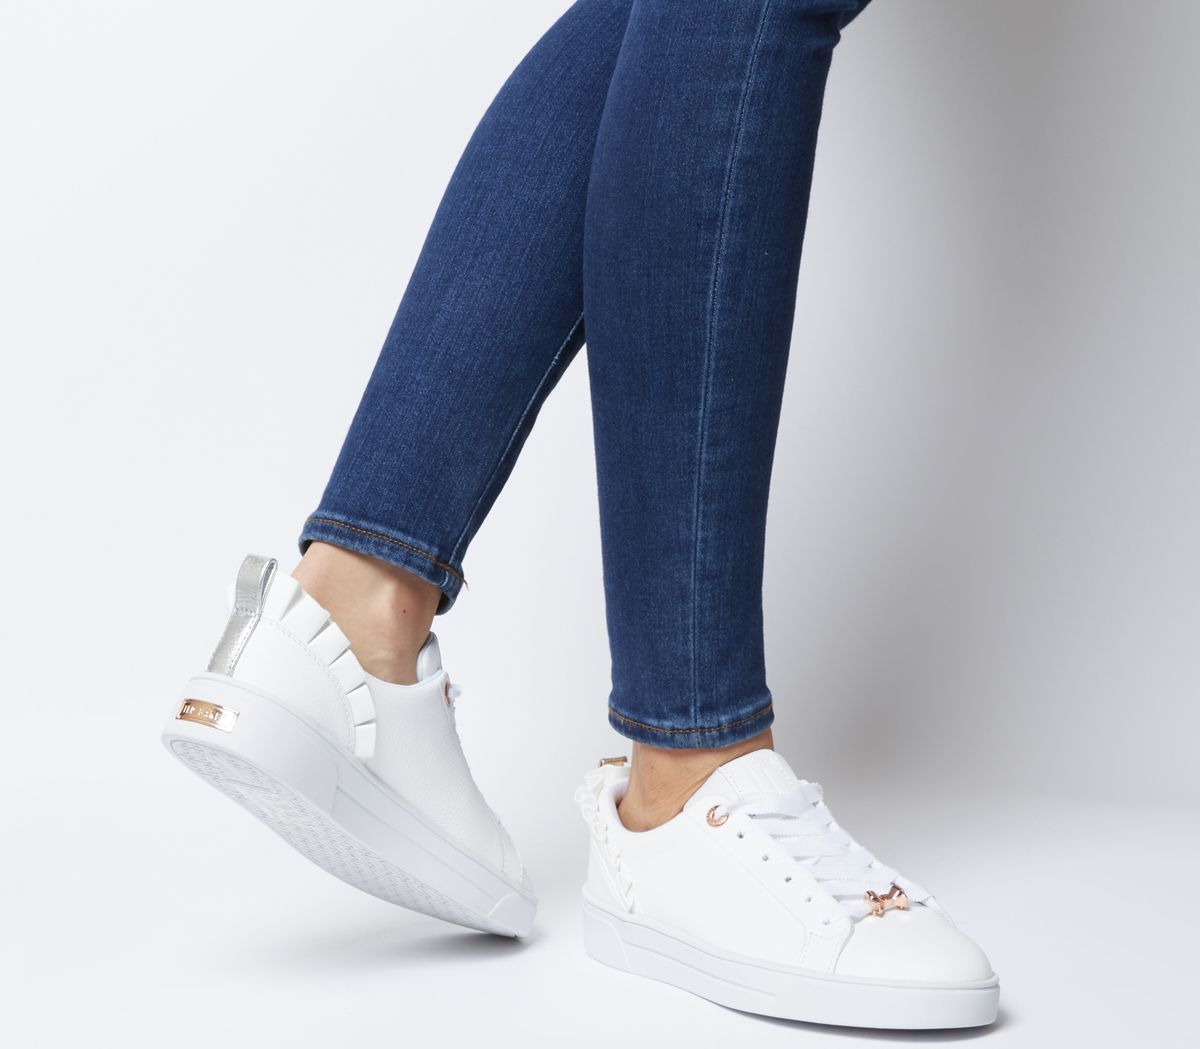 7092a805 Ted Baker Astrina Sneakers White Leather - Hers trainers